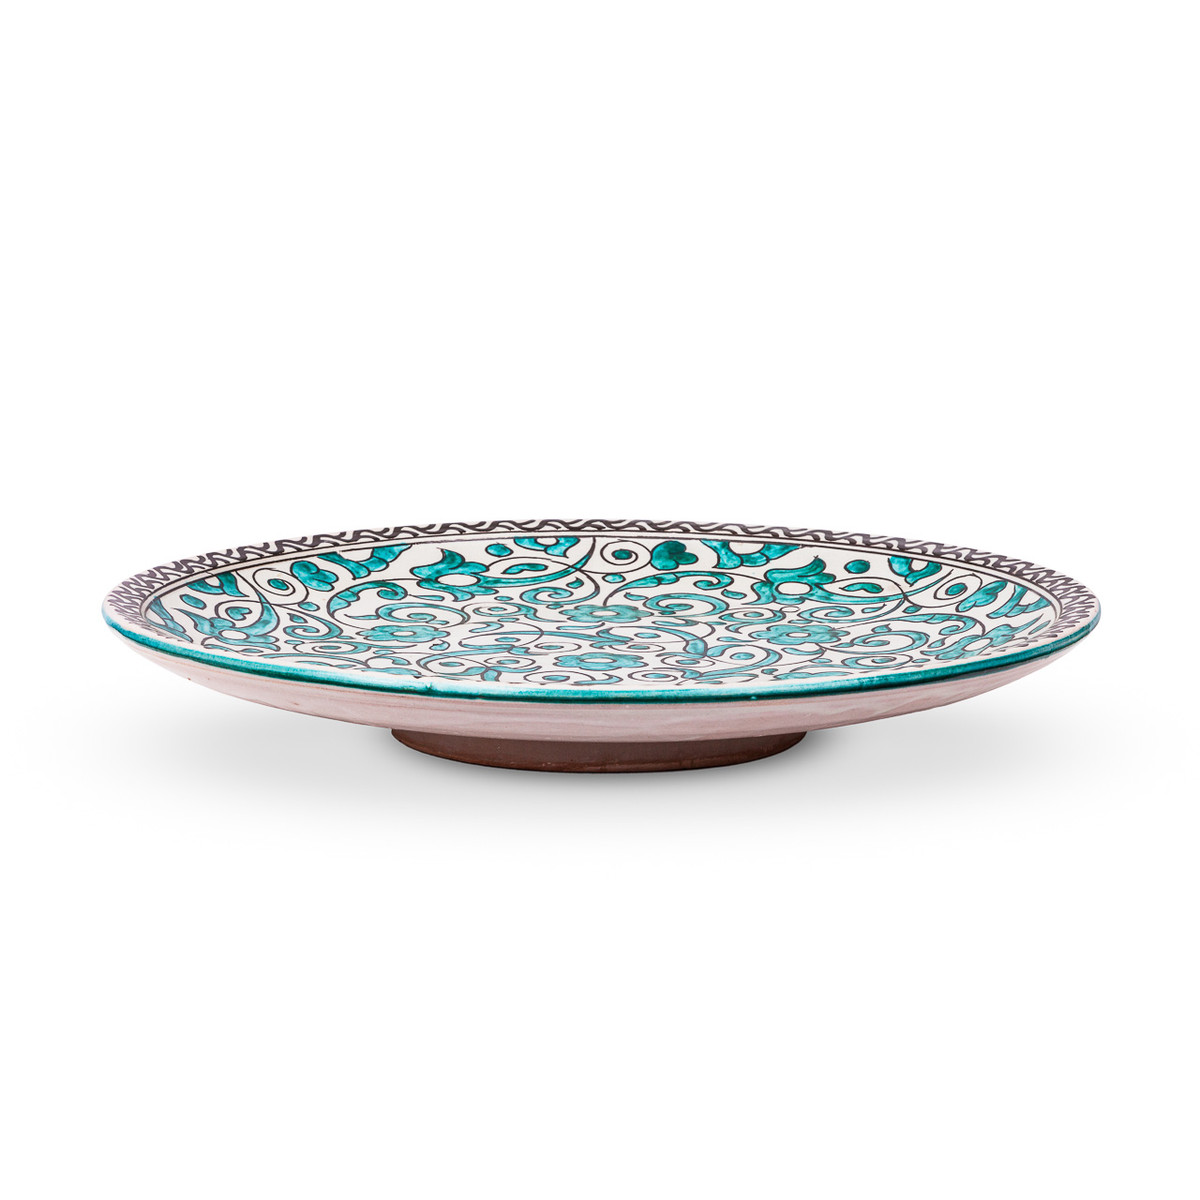 Fes Ceramic Plate Green from Morocco · Fes Ceramic Plate Green from Morocco ...  sc 1 st  Cargo Lane & Large Ceramic Plates u0026 Bowls From Morocco Patterned